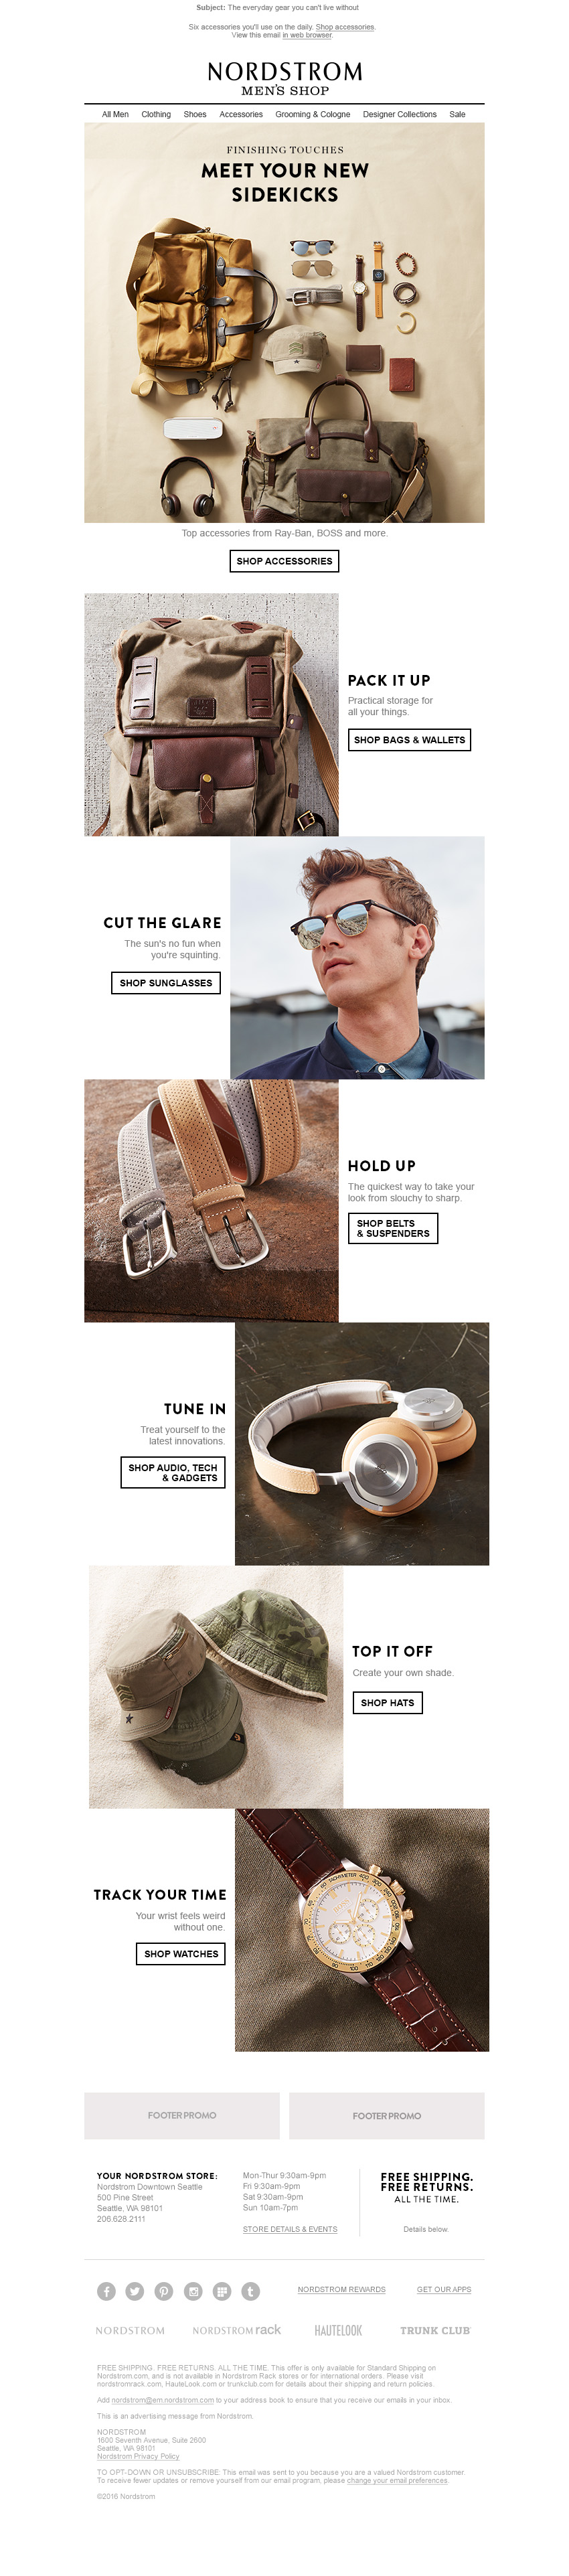 06_05.09.16_Mens_Accessories_Email_Billboard+List_179022.jpg